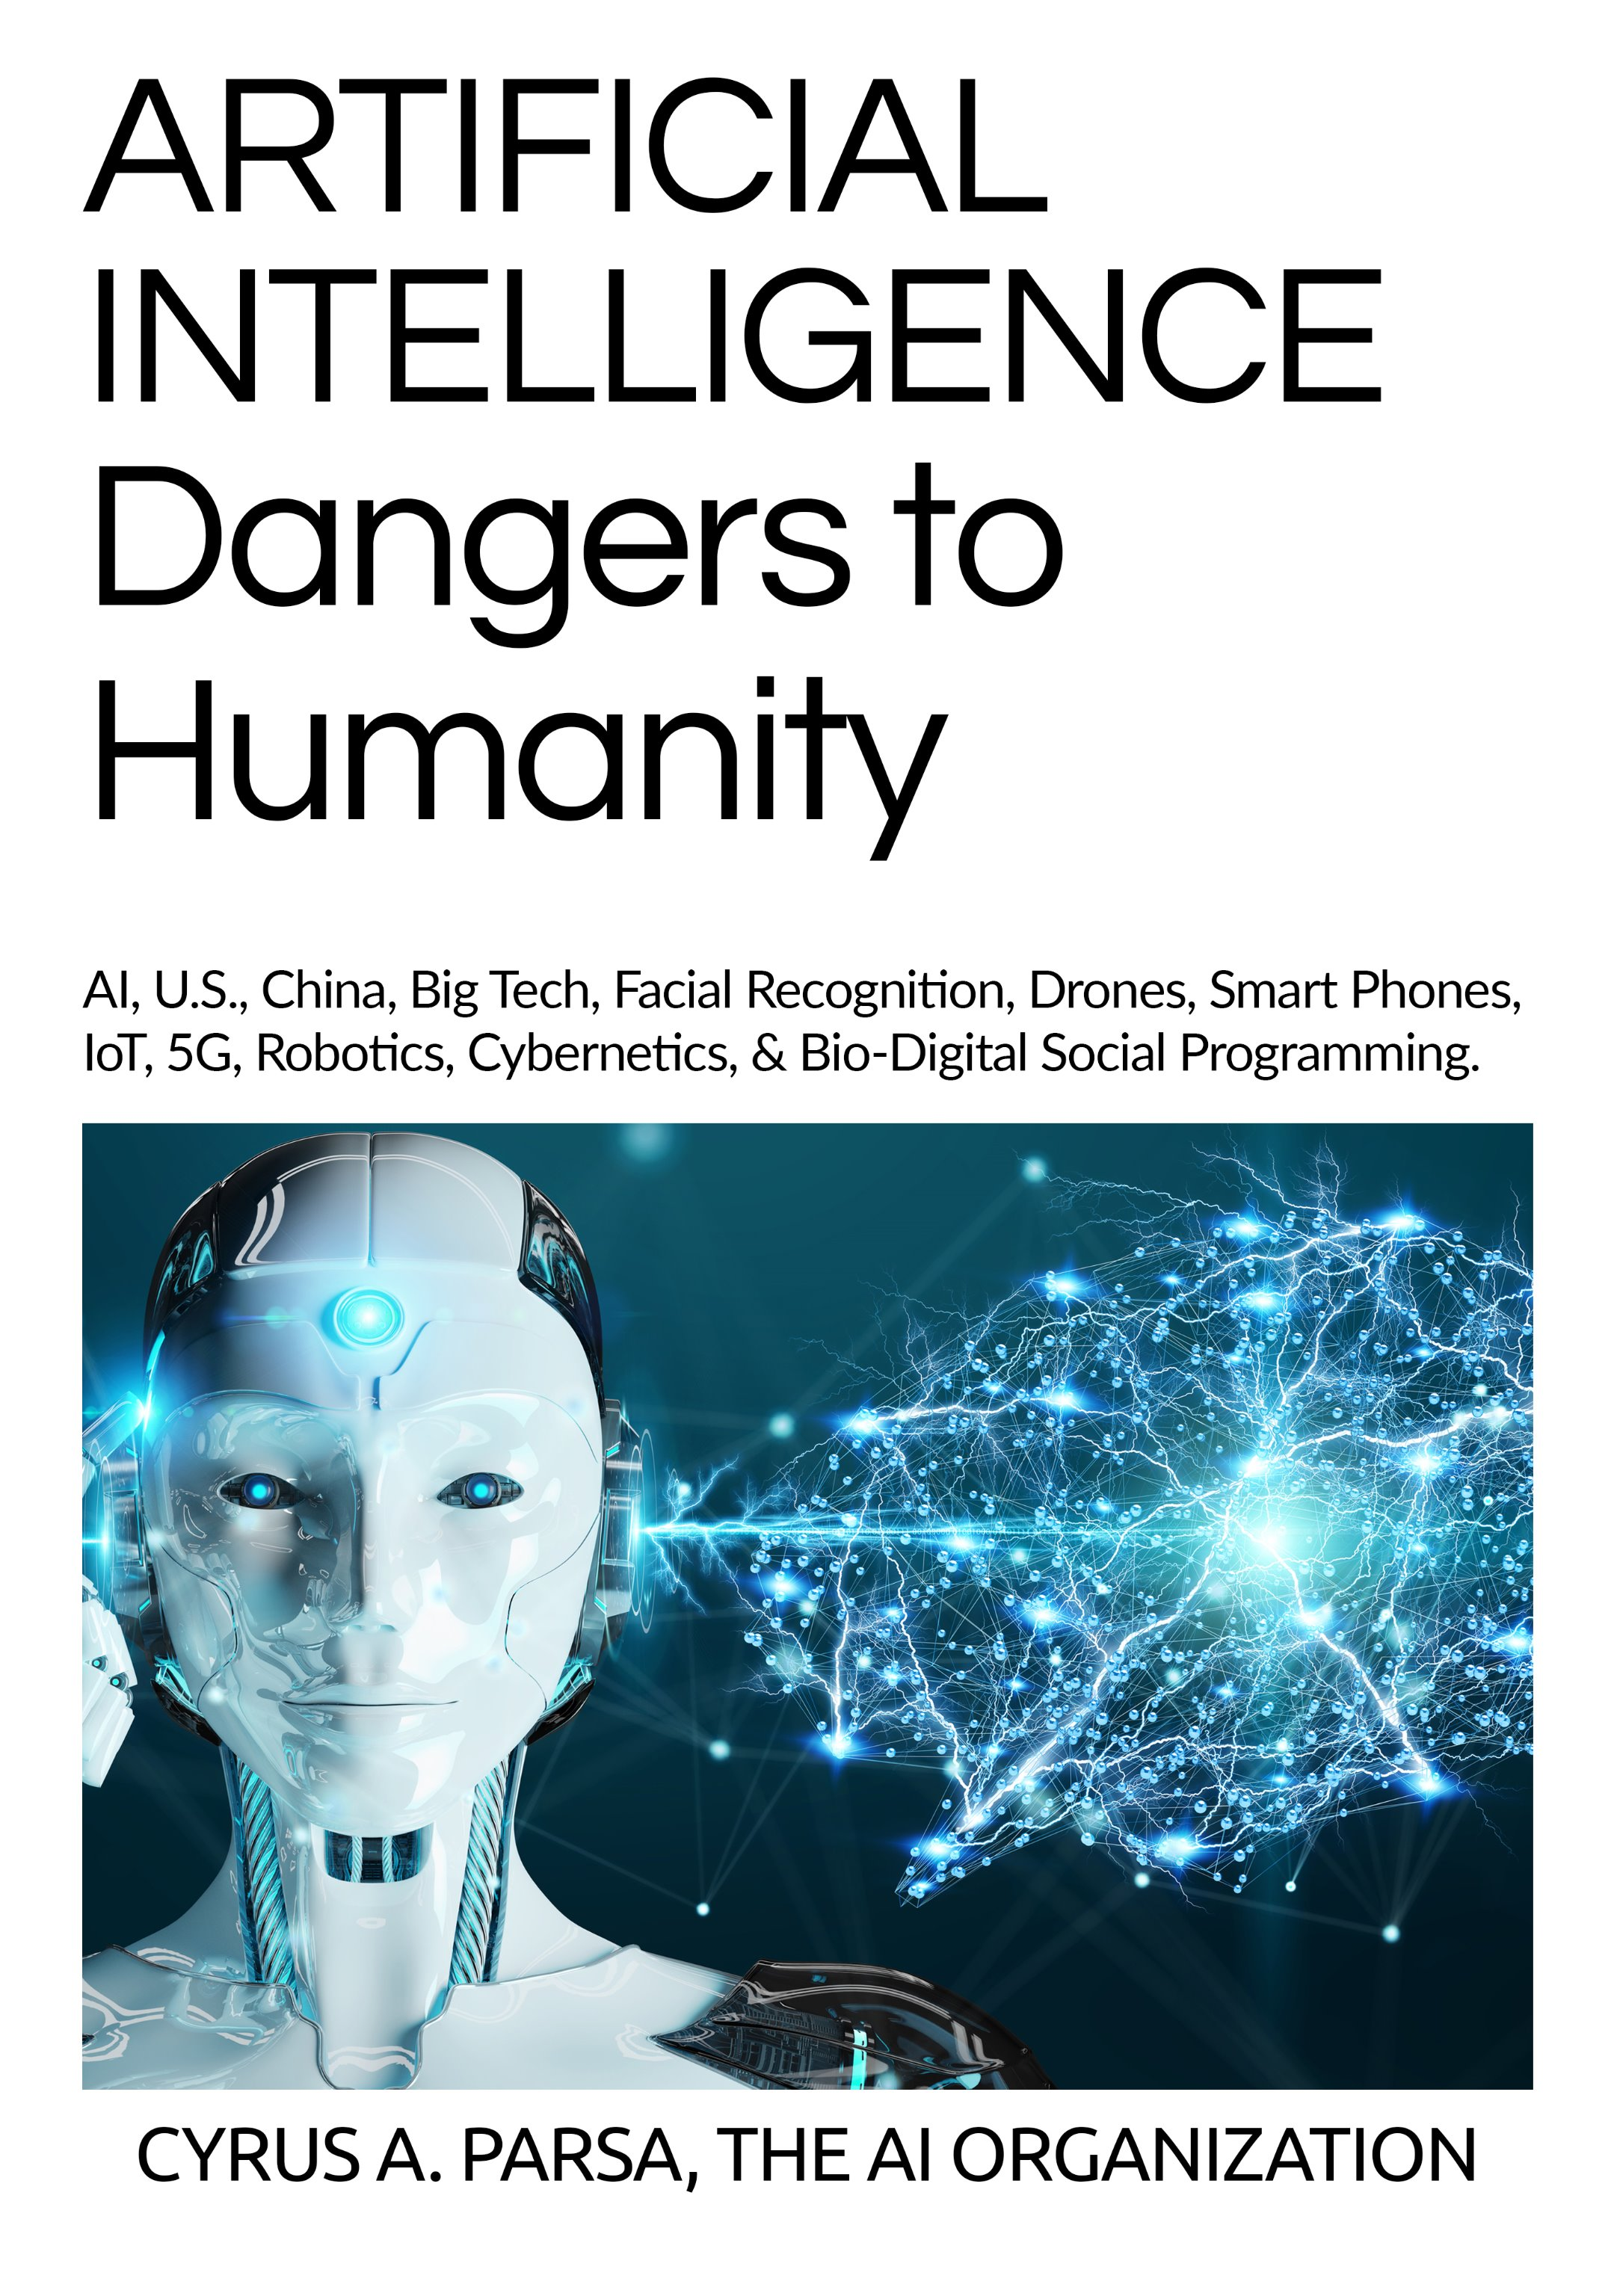 ARTIFICIAL INTELLIGENCE DANGERS TO HUMANITY